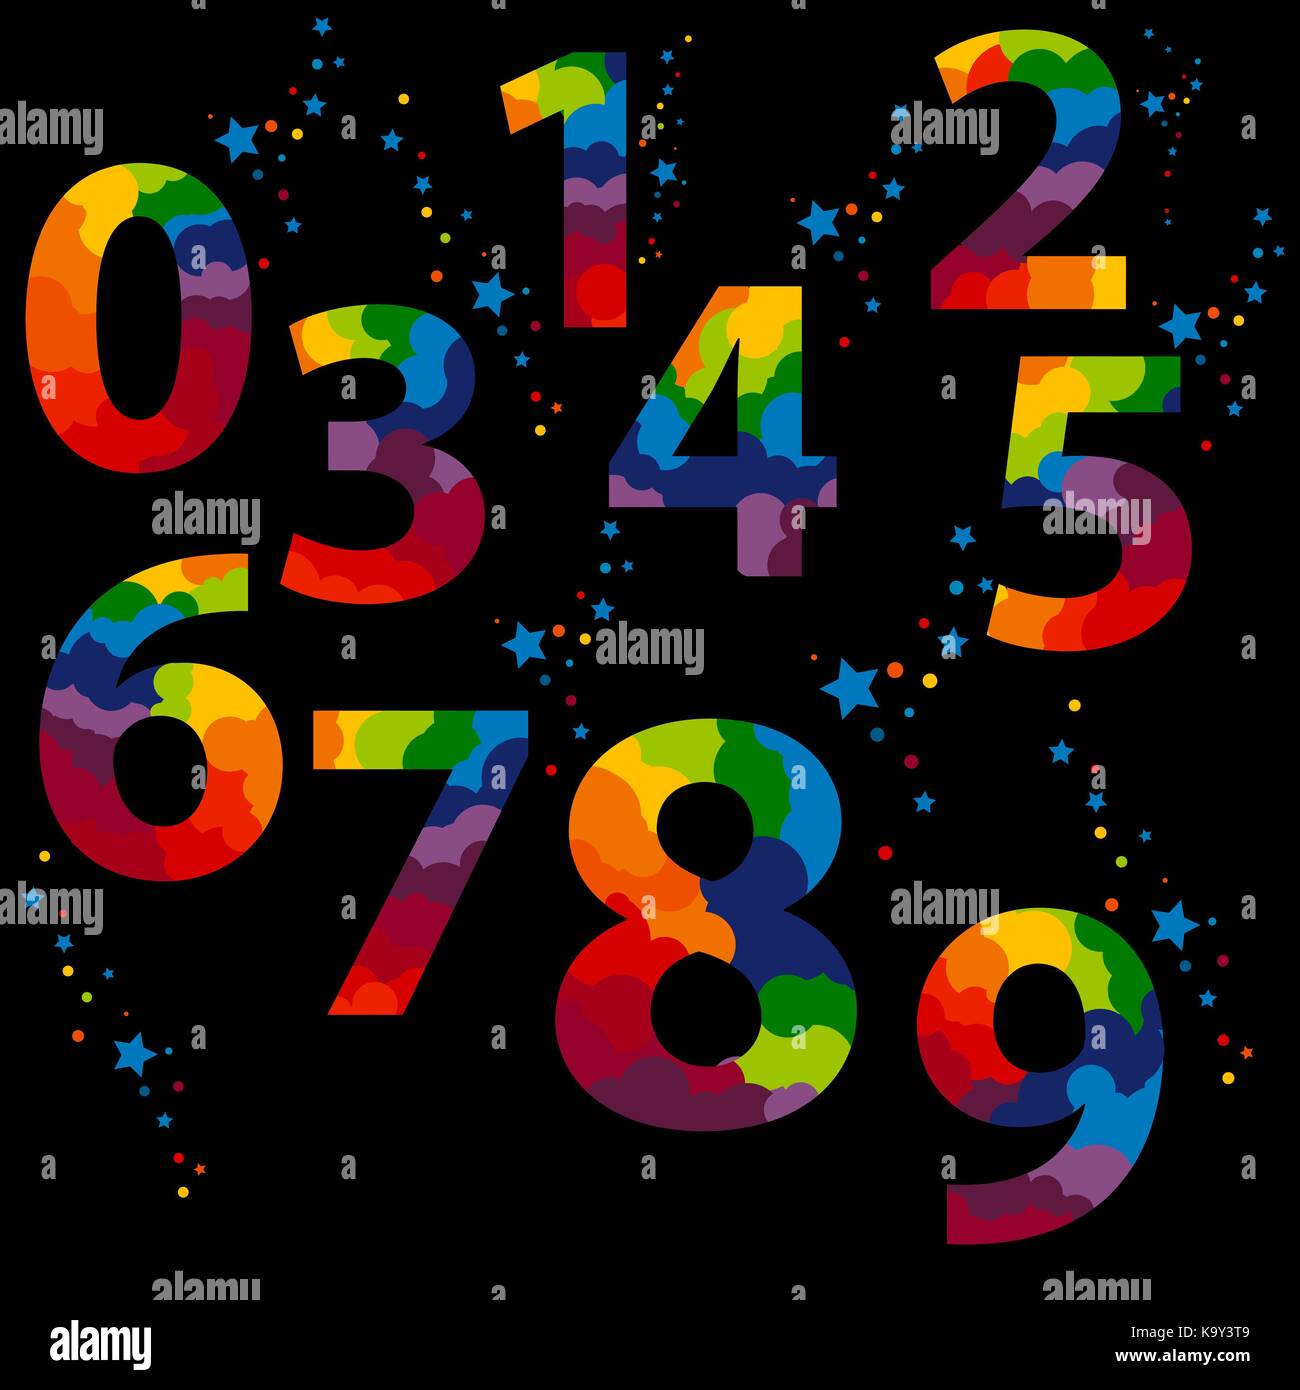 colorful Numbers set logos at black background. A splash of stars and candy above each sign. - Stock Image